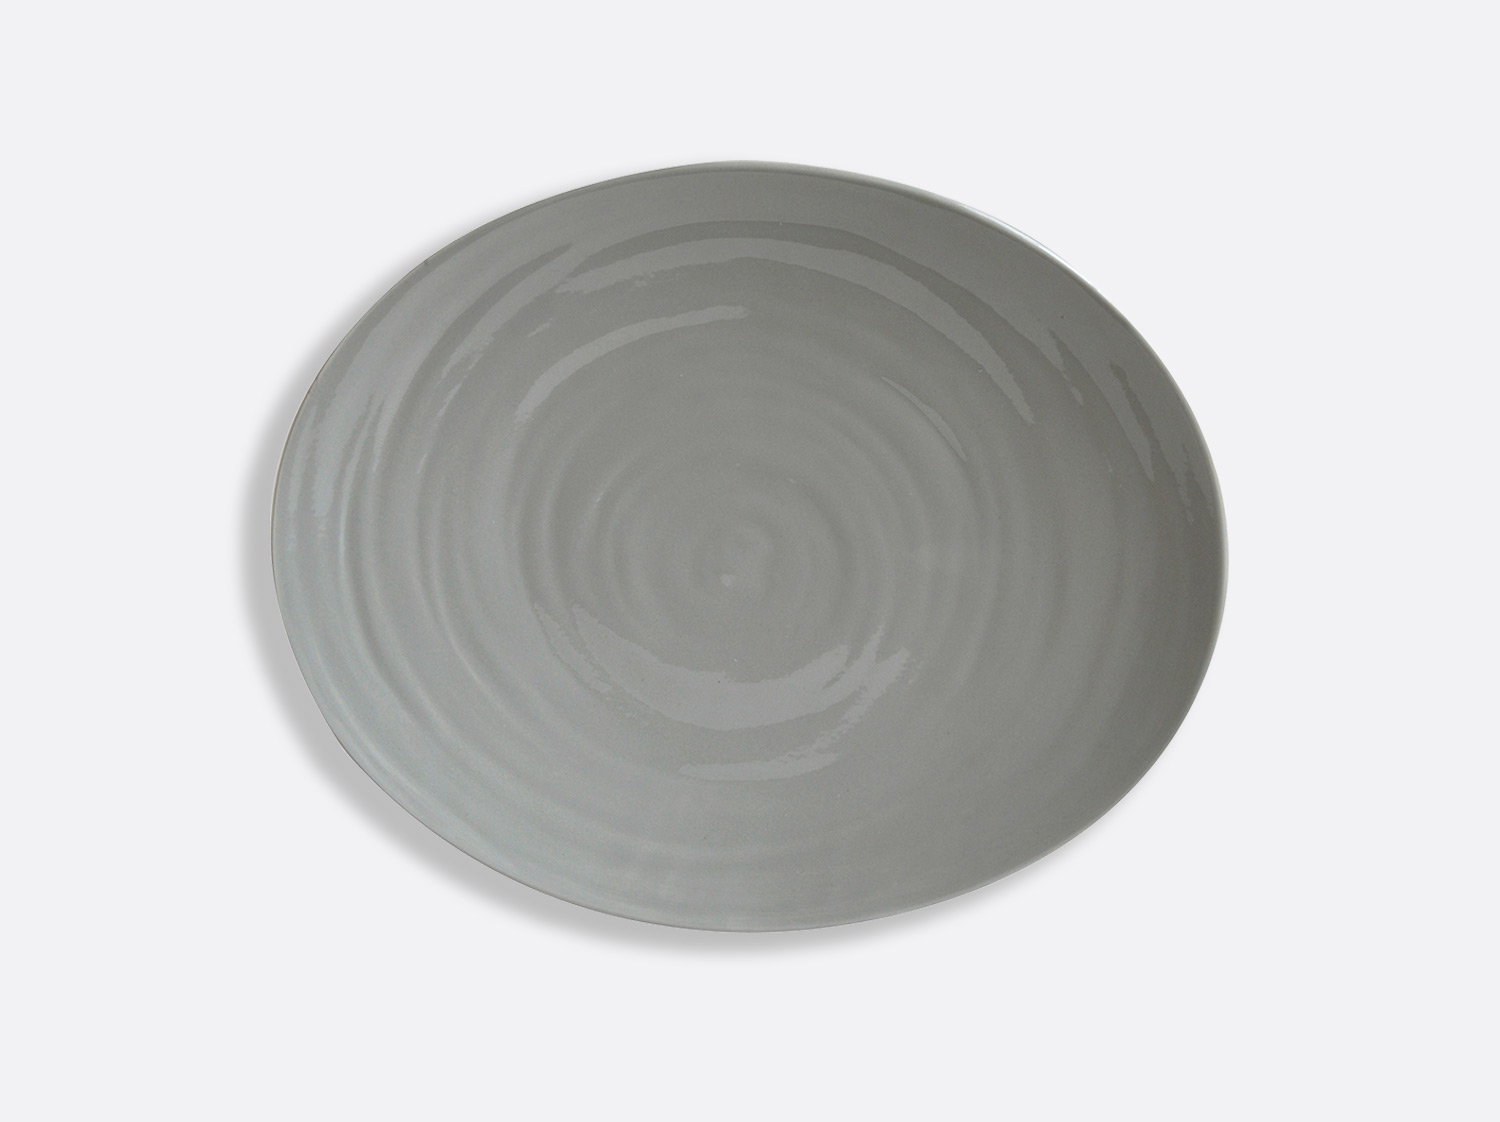 Assiette ovale 33 cm - Gris en porcelaine de la collection Origine gris Bernardaud